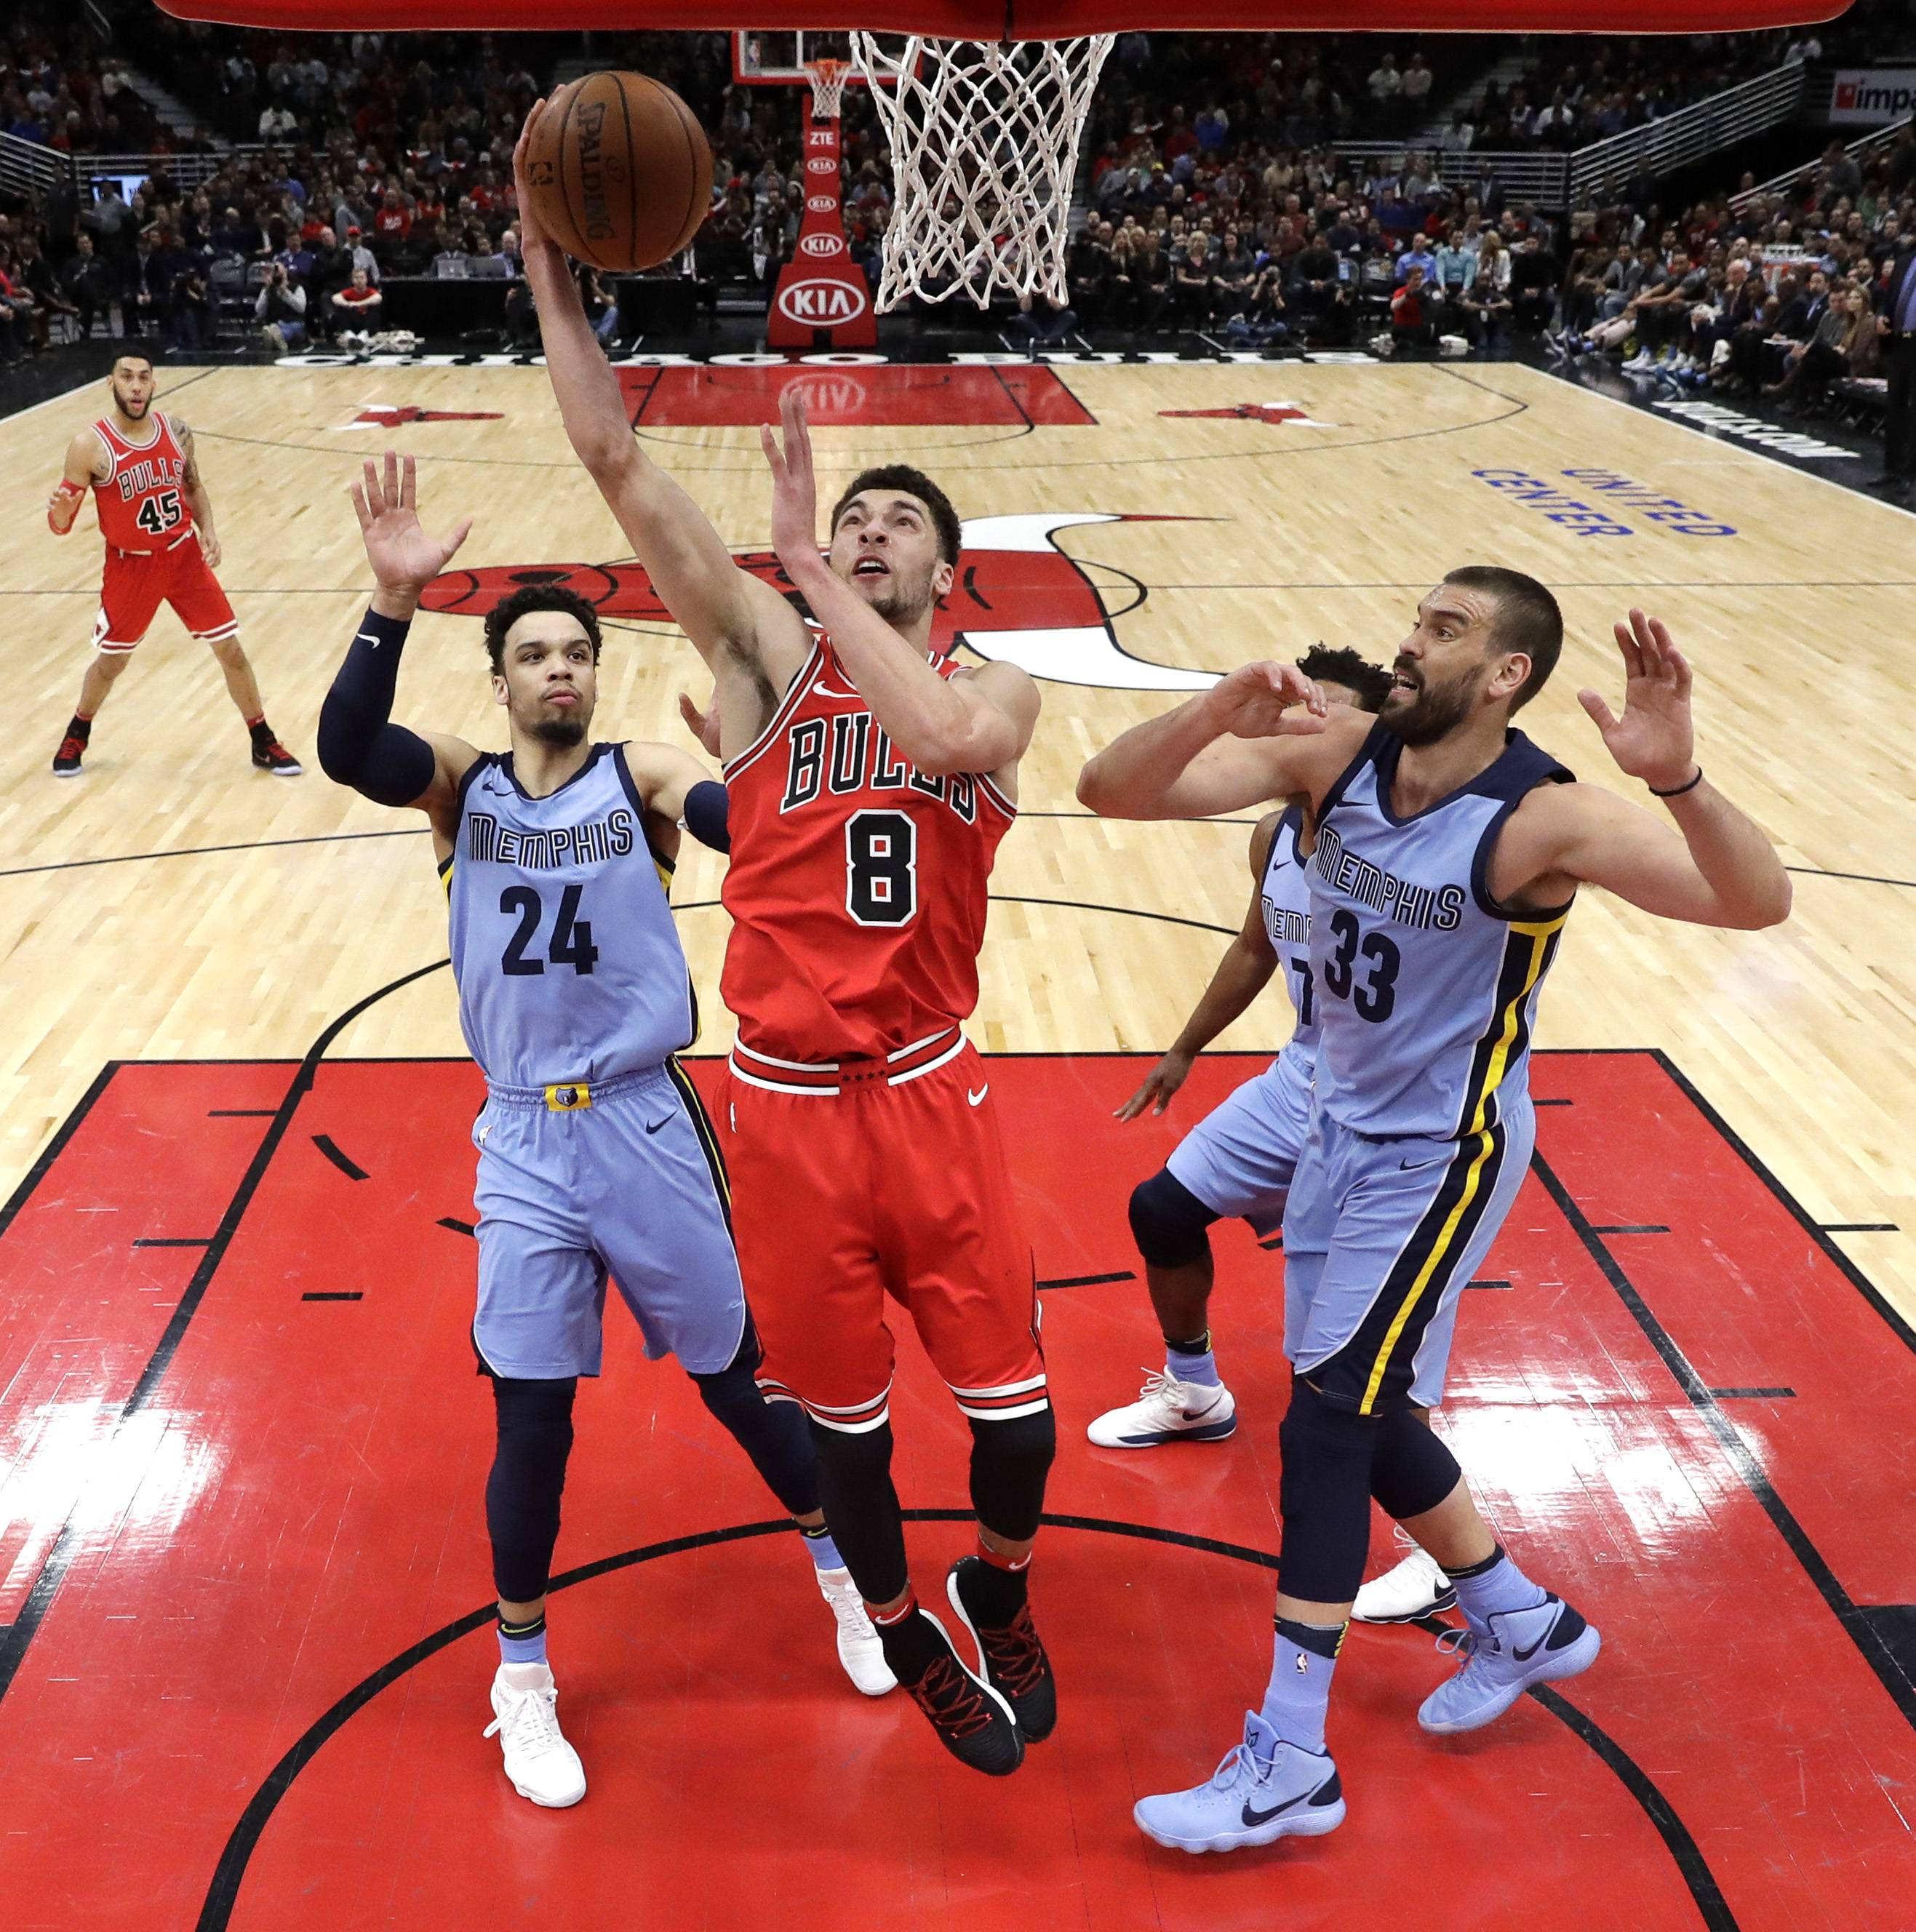 Chicago Bulls' Zach LaVine, center, scores between Memphis Grizzlies' Dillon Brooks, left,  and Marc Gasol, right, during the first half of an NBA basketball game Wednesday, March 7, 2018, in Chicago.